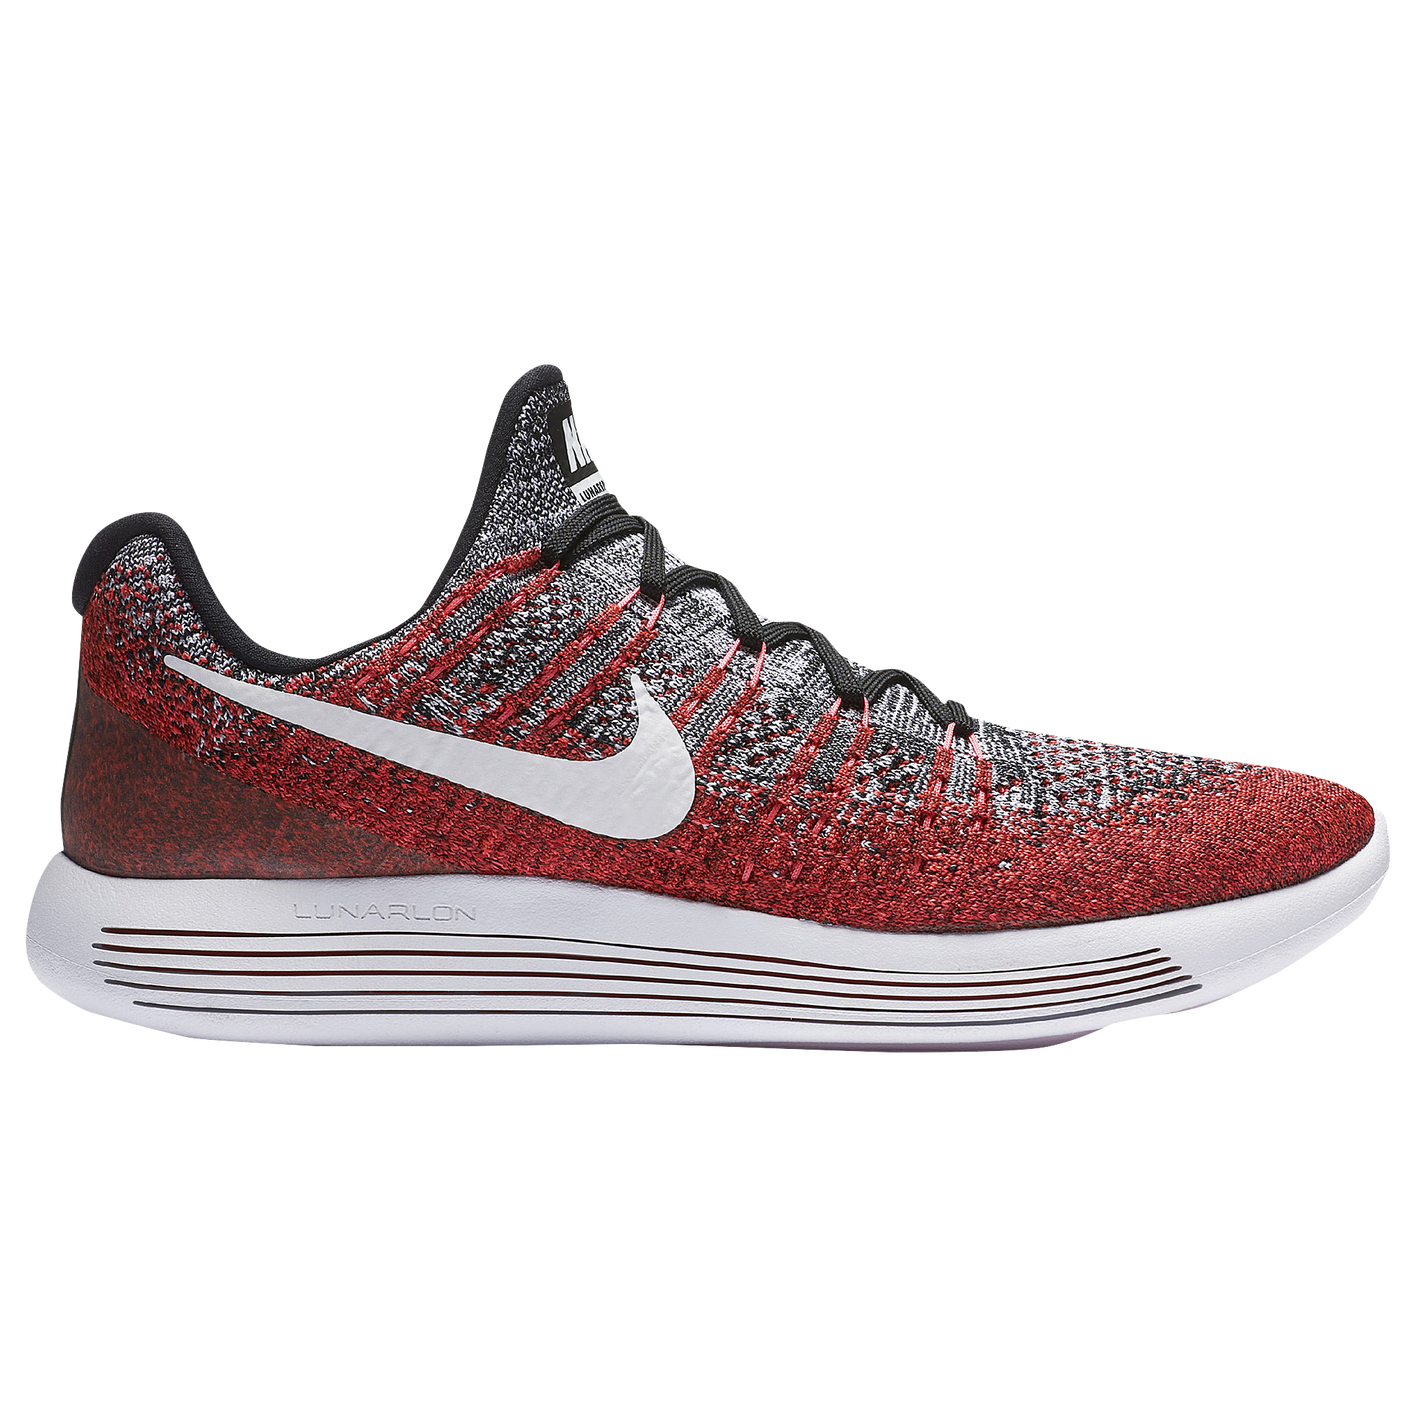 wholesale dealer f8445 6ccee Nike LunarEpic Low Flyknit 2 - Men s